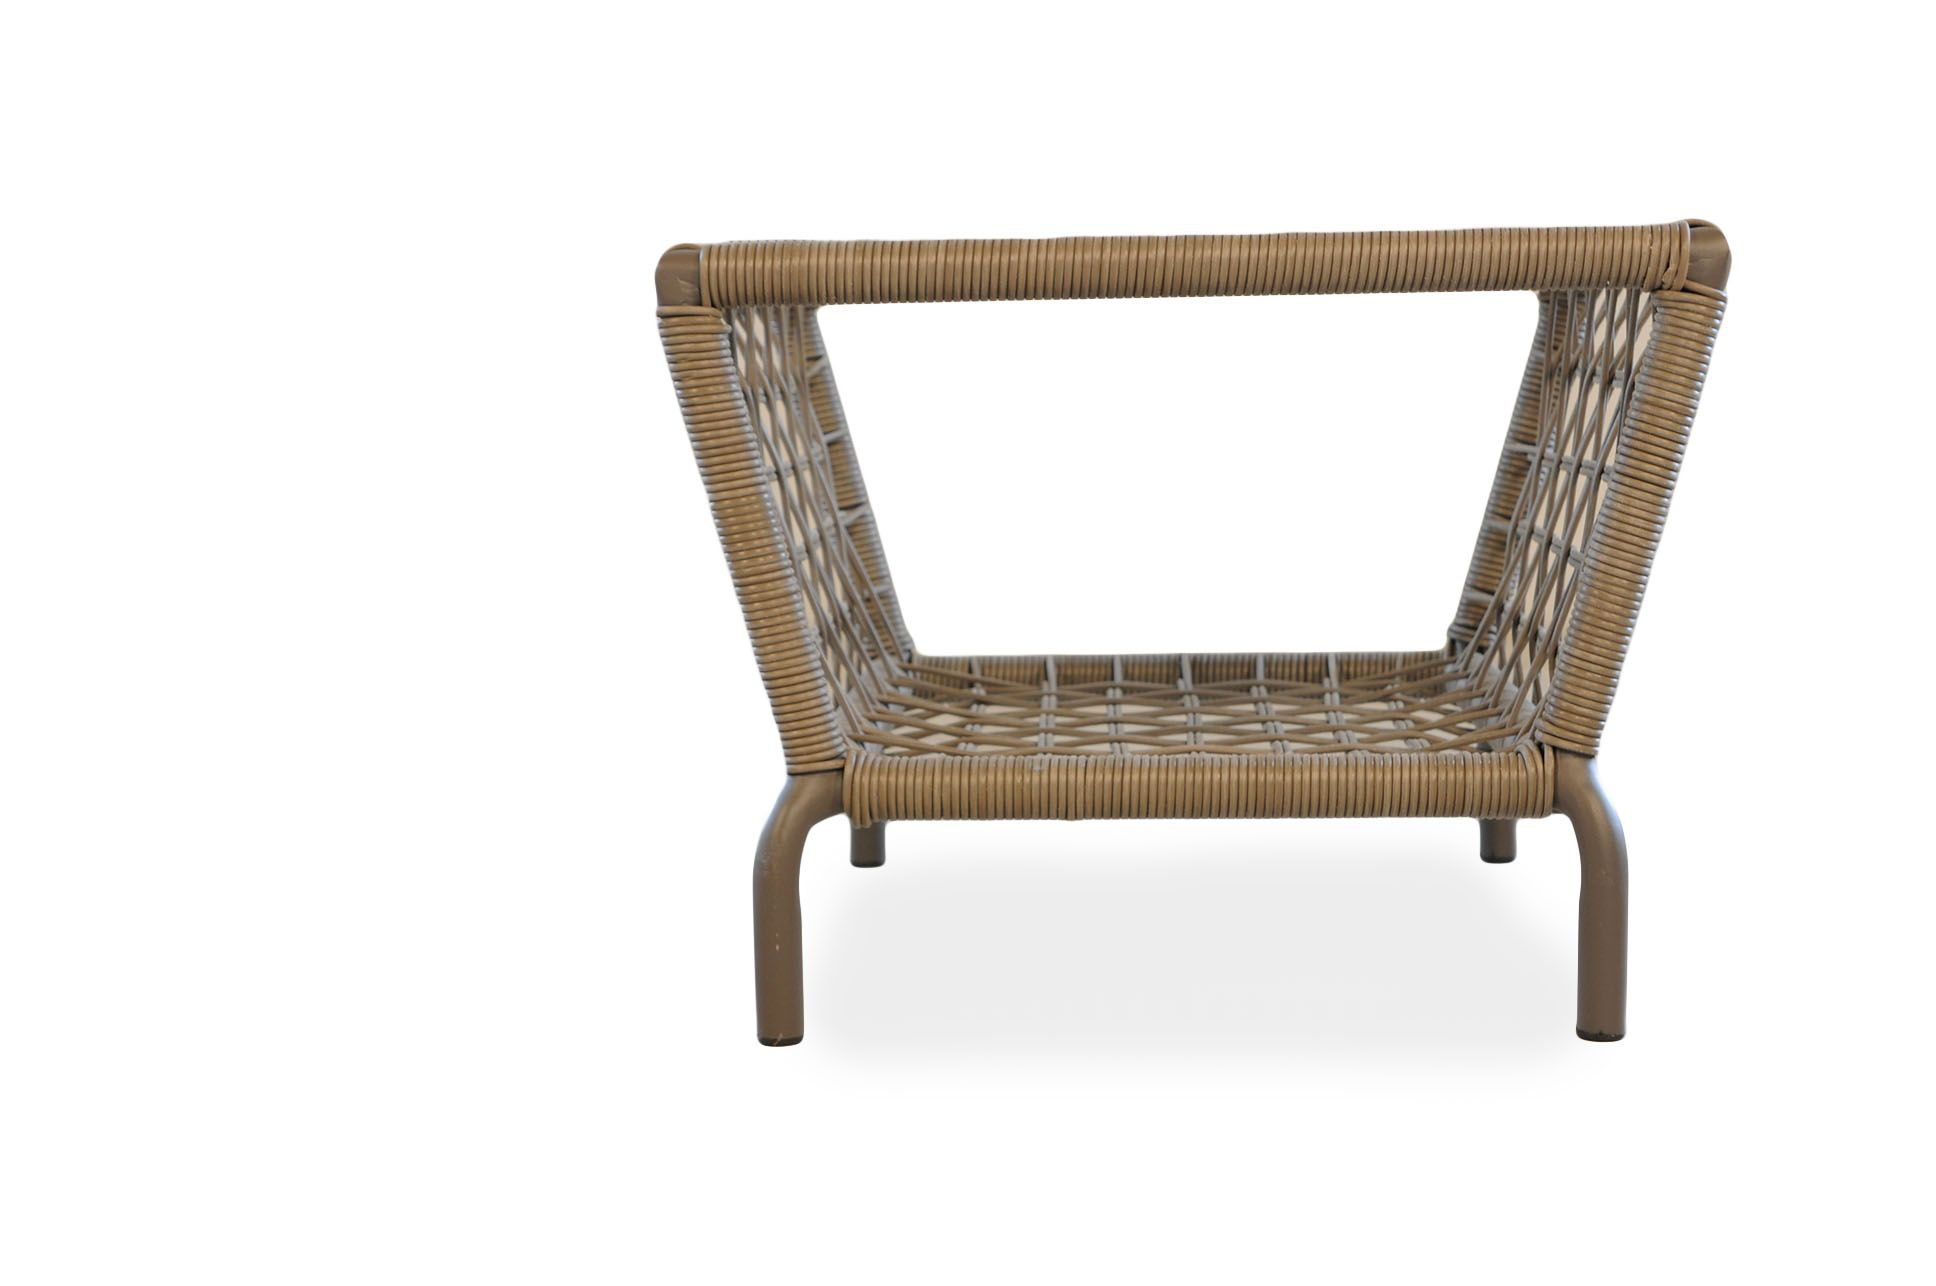 sifas outdoor furniture. CurranOnline : Indoor Furniture, Outdoor Barlow Tyrie, Emu Lister Teak Sifas Furniture